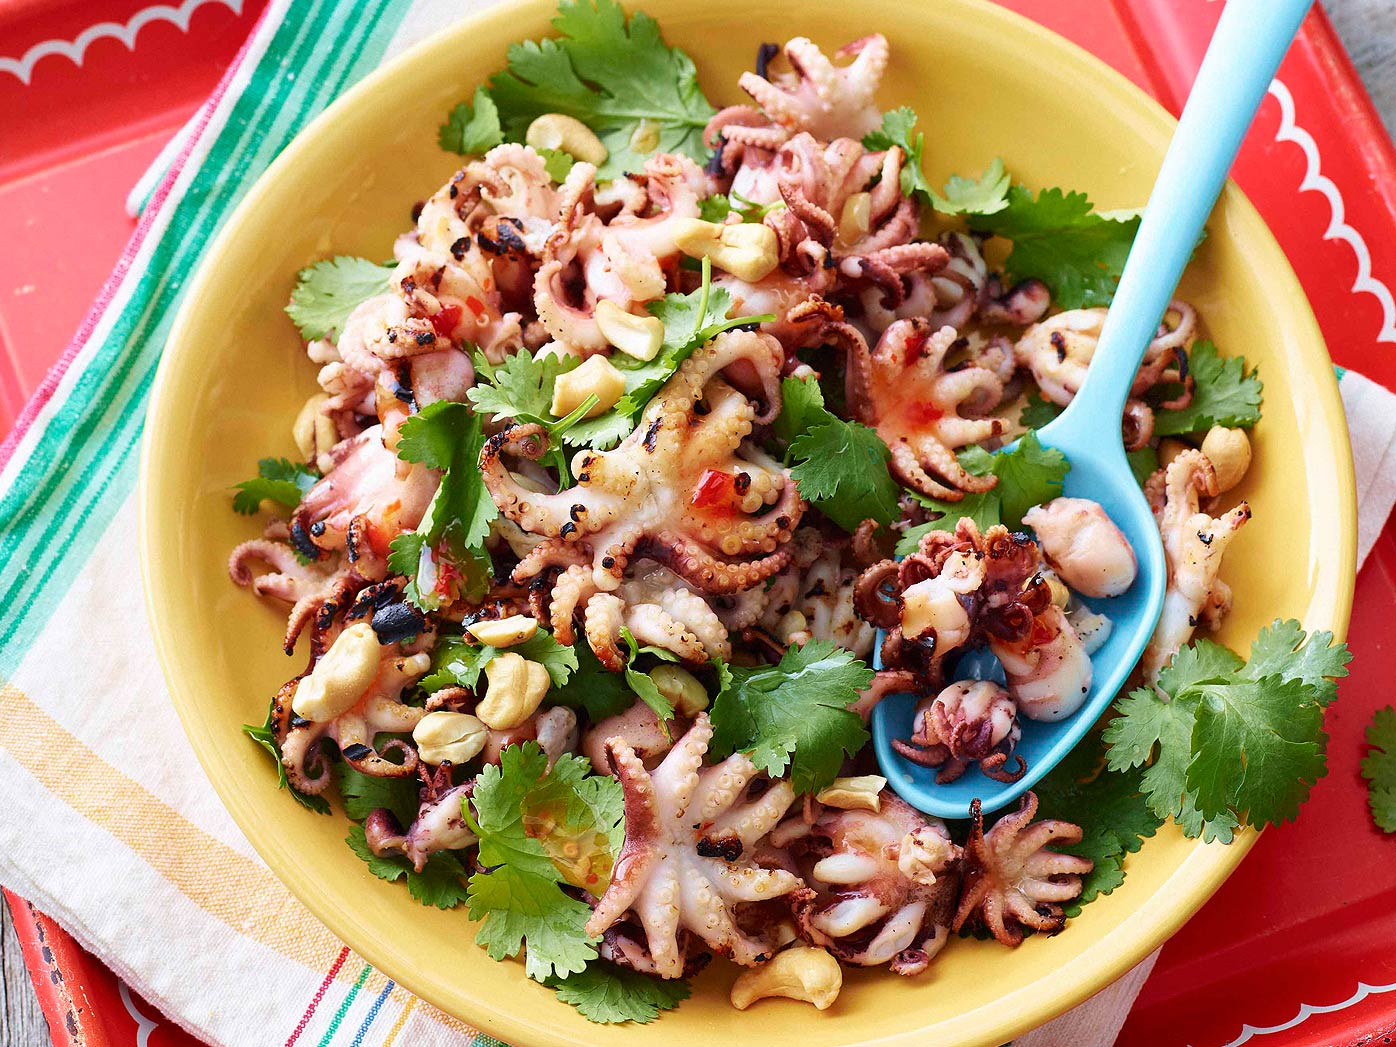 Barbecued octopus with coriander